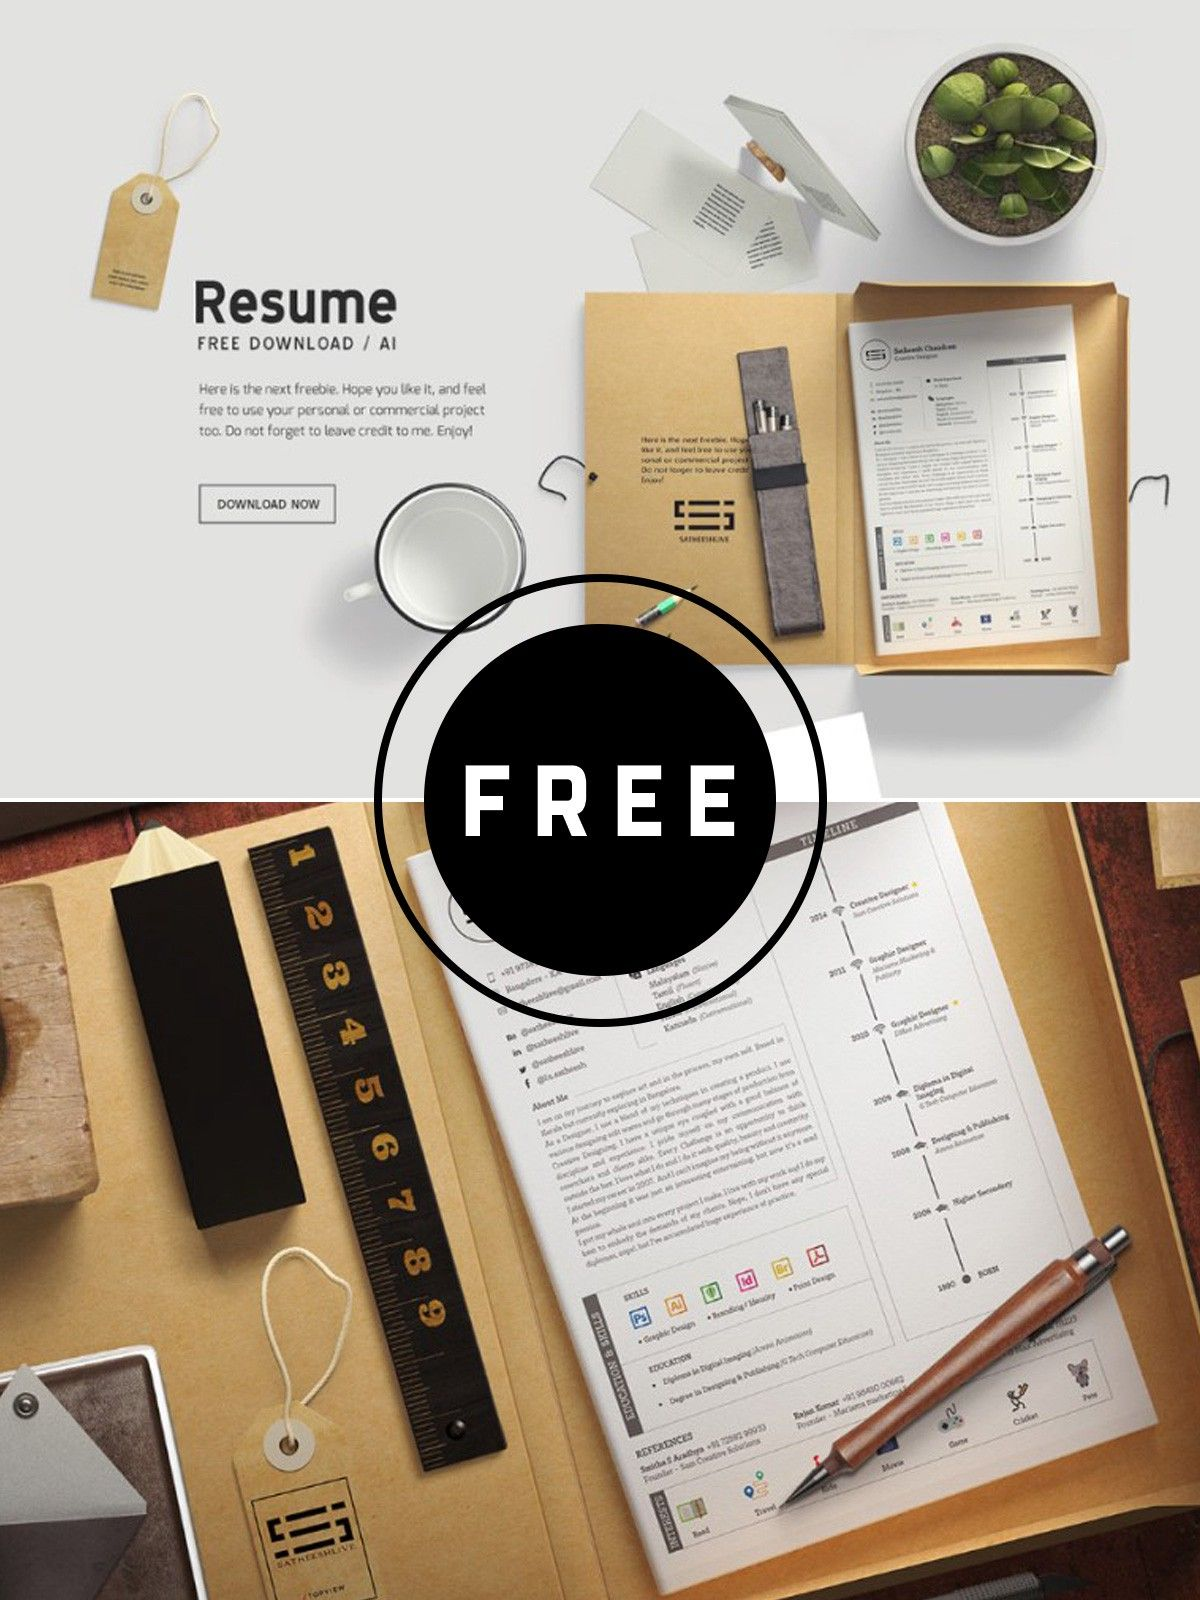 100 Free Best Resume Templates For 2019 in 2020 Resume